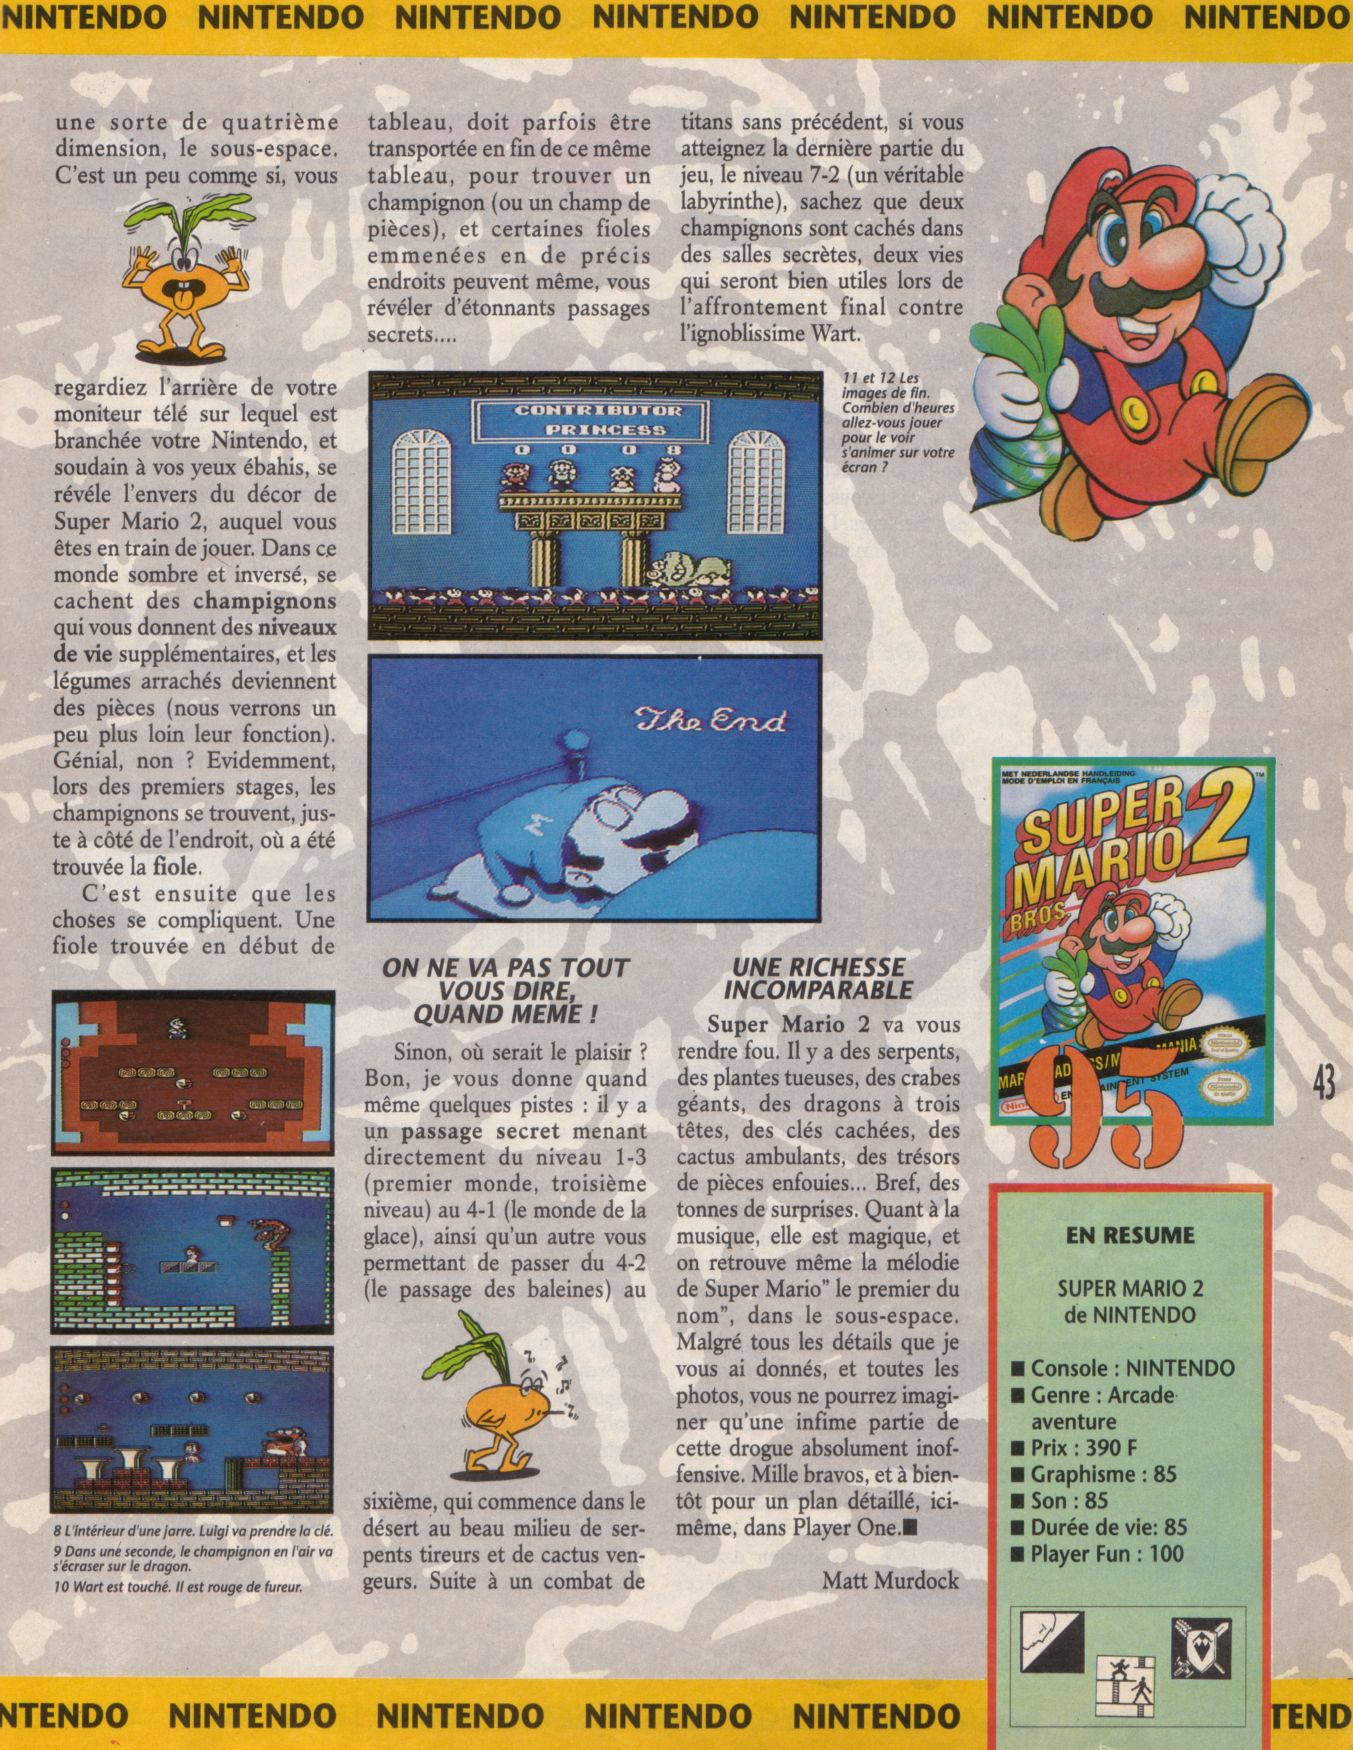 [JEUX]   SUPER MARIO BROS 2 (NES) 1988. Player%20One%20001%20-%20Page%20043%20(1990-09)